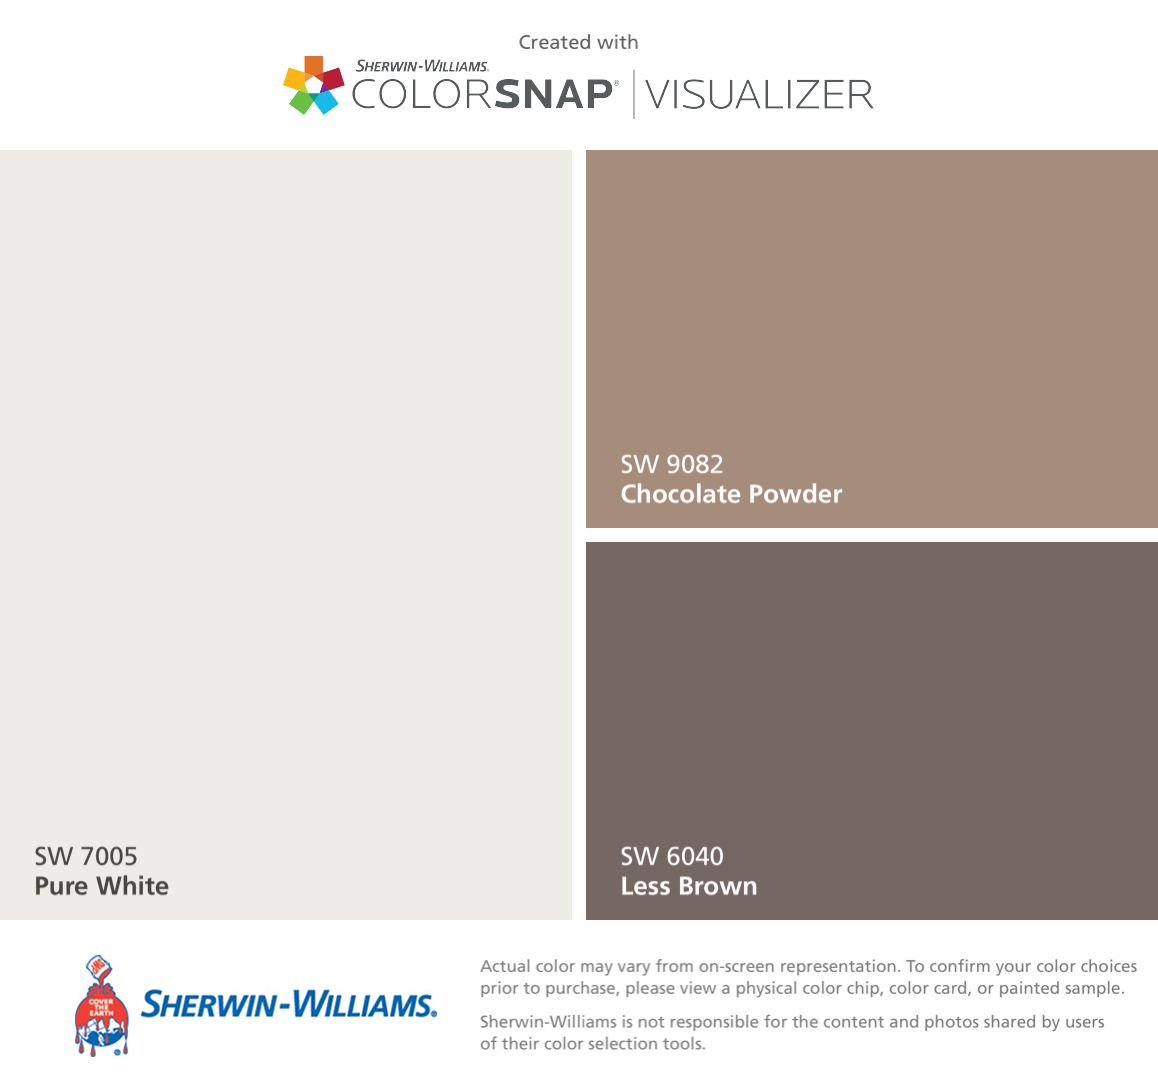 I found these colors with ColorSnap® Visualizer for iPhone by Sherwin-Williams: Pure White (SW 7005), Chocolate Powder (SW 9082), Less Brown (SW 6040).